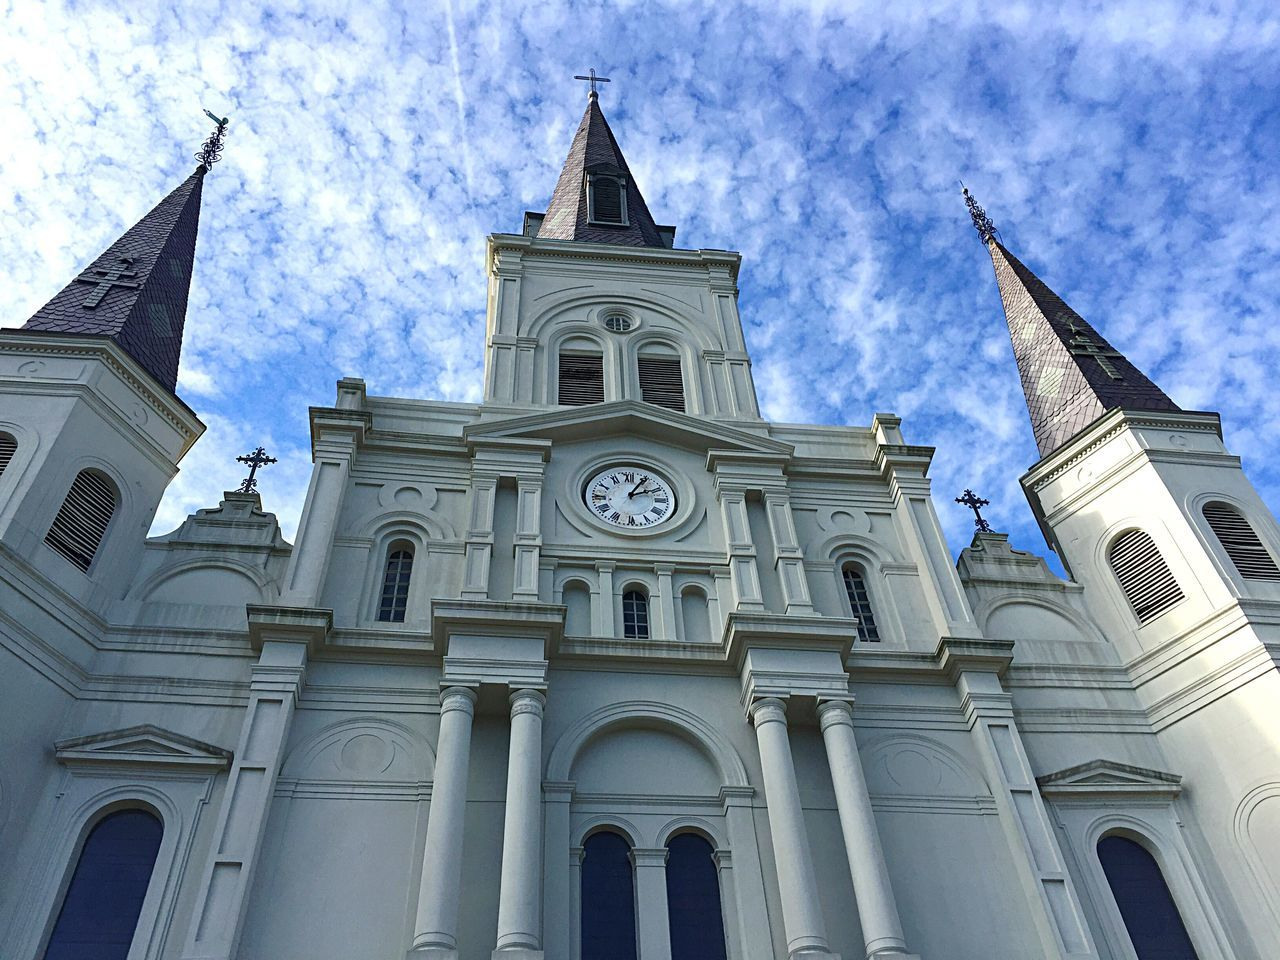 Architecture Building Exterior Built Structure Religion Low Angle View Place Of Worship Spirituality Sky Travel Destinations No People Outdoors Day Rose Window St. Louis Cathedral Jackson Square